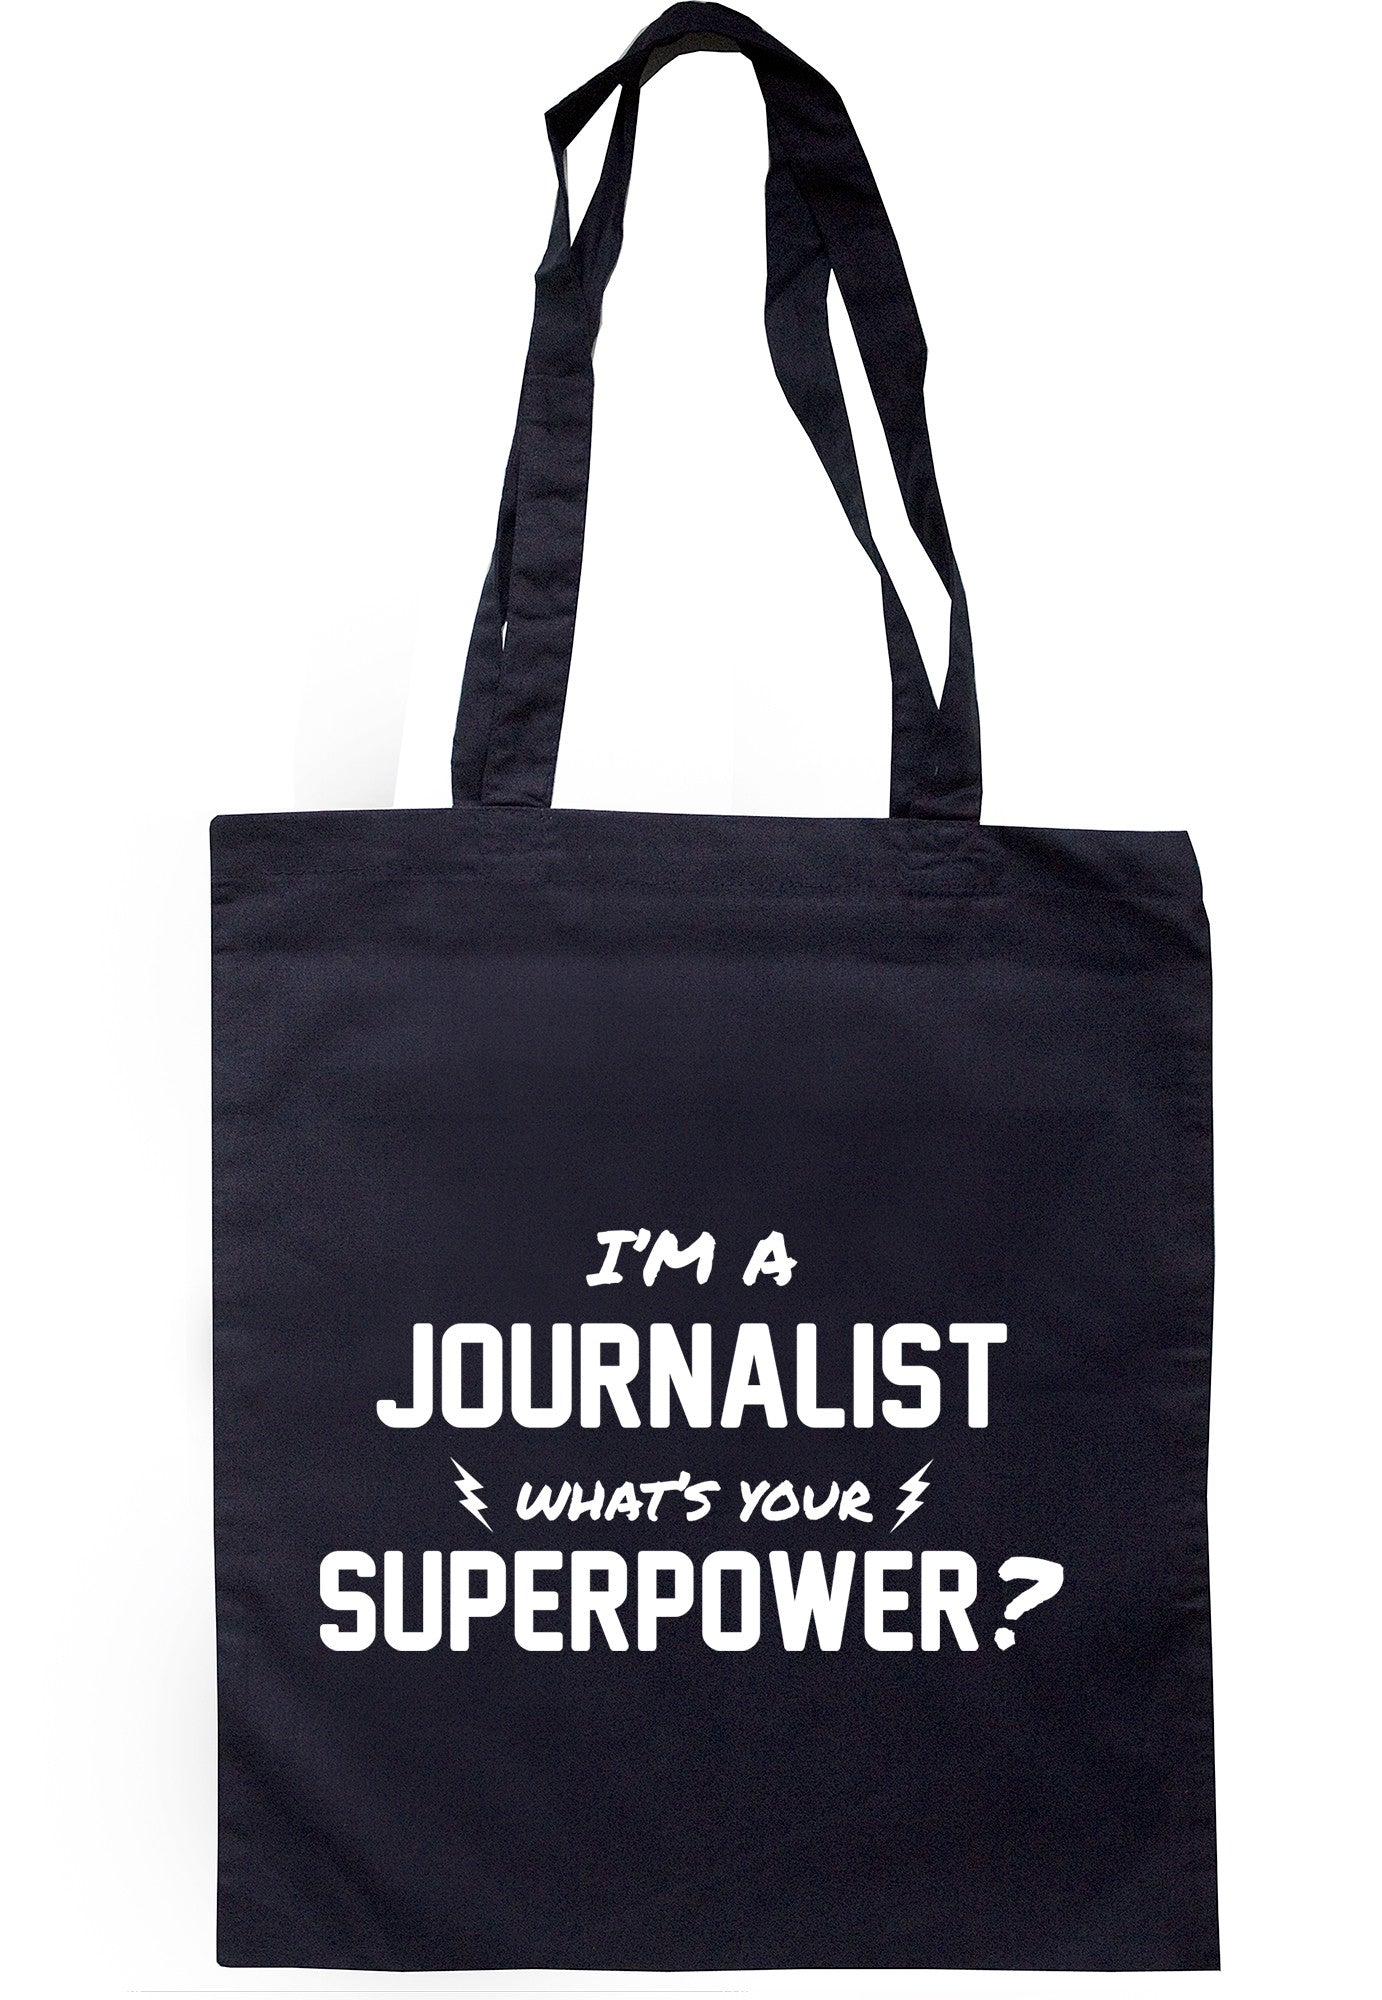 I'm A Journalist What's Your Superpower? Tote Bag TB0524 - Illustrated Identity Ltd.